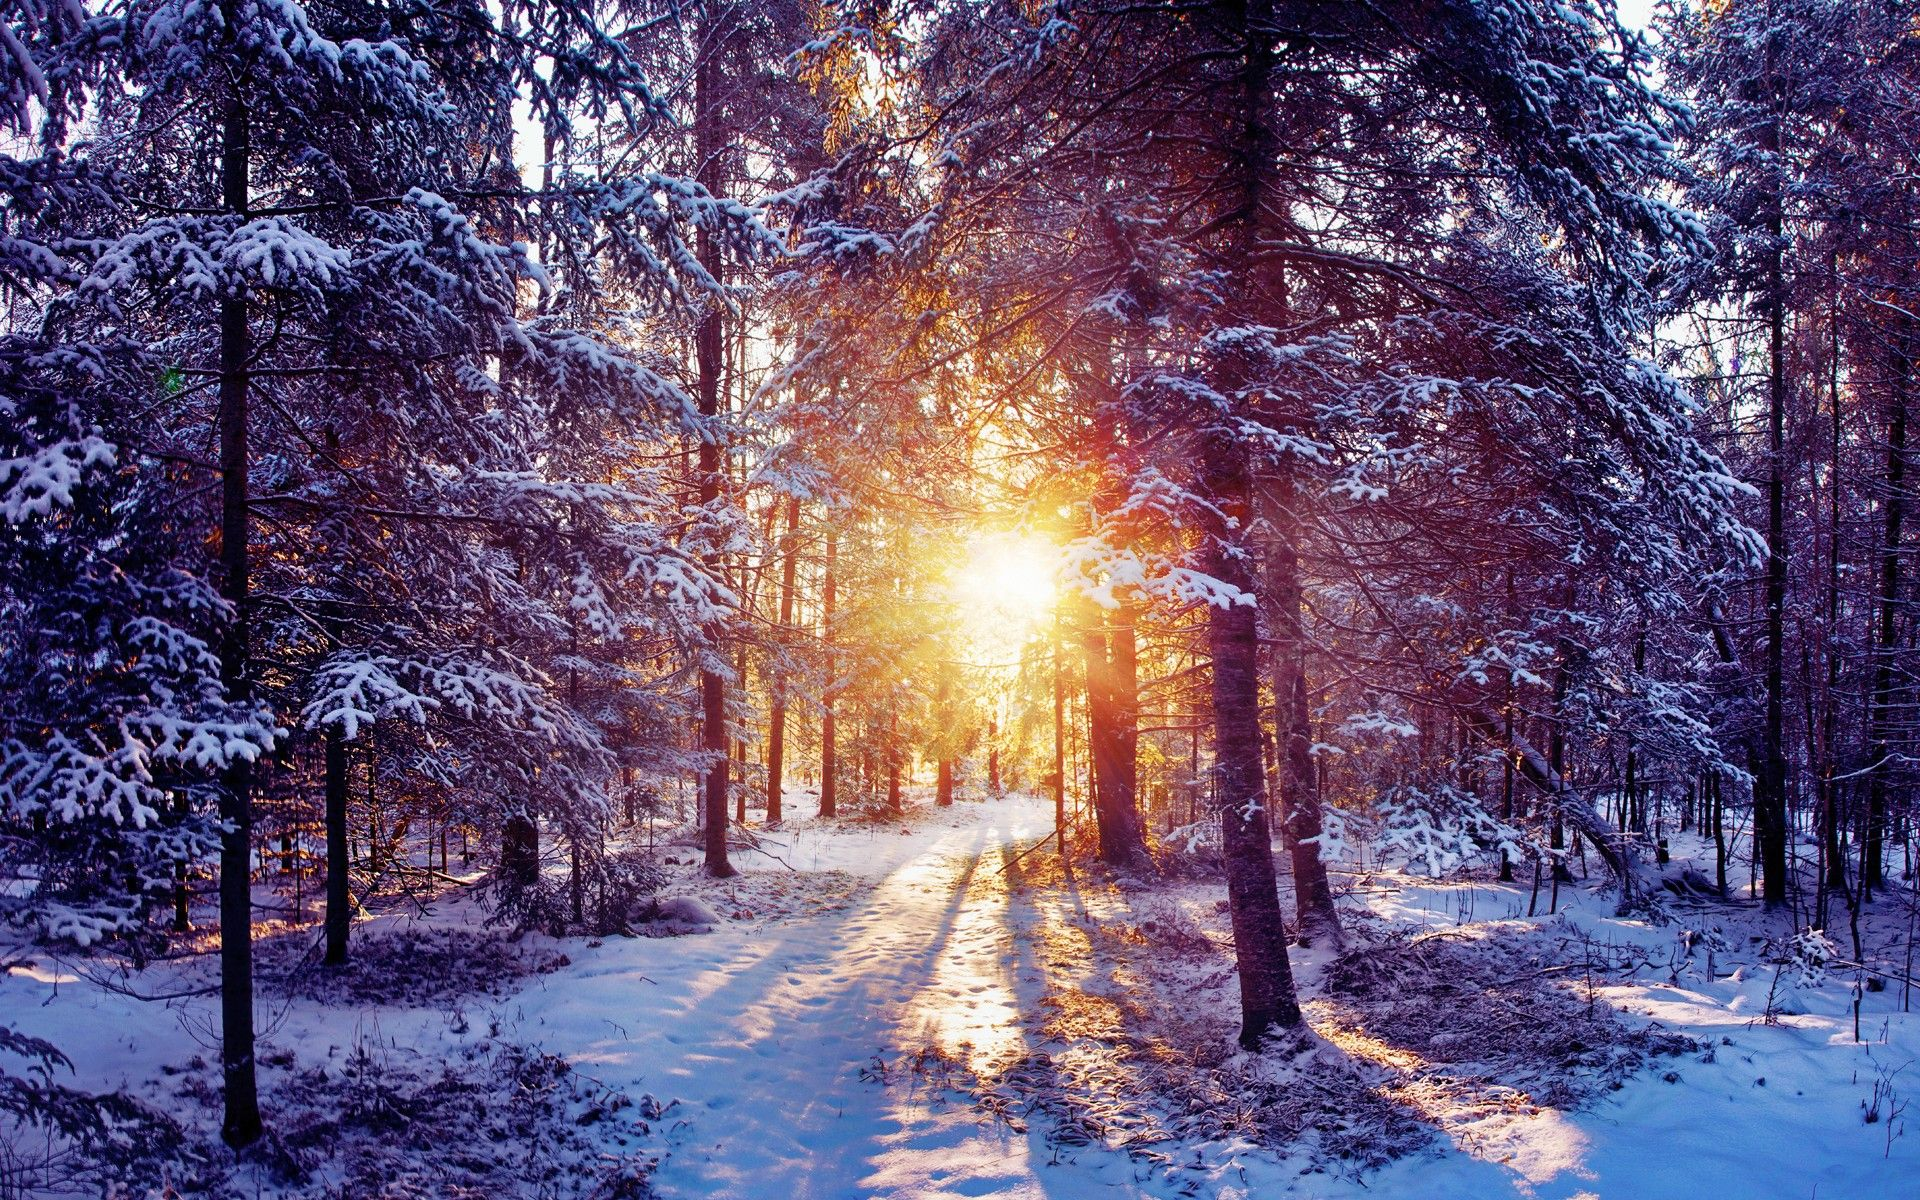 Top Wallpaper High Quality Winter - 8be9c8cbc5163e291cb10acf8d9863ae  Collection_585819.jpg